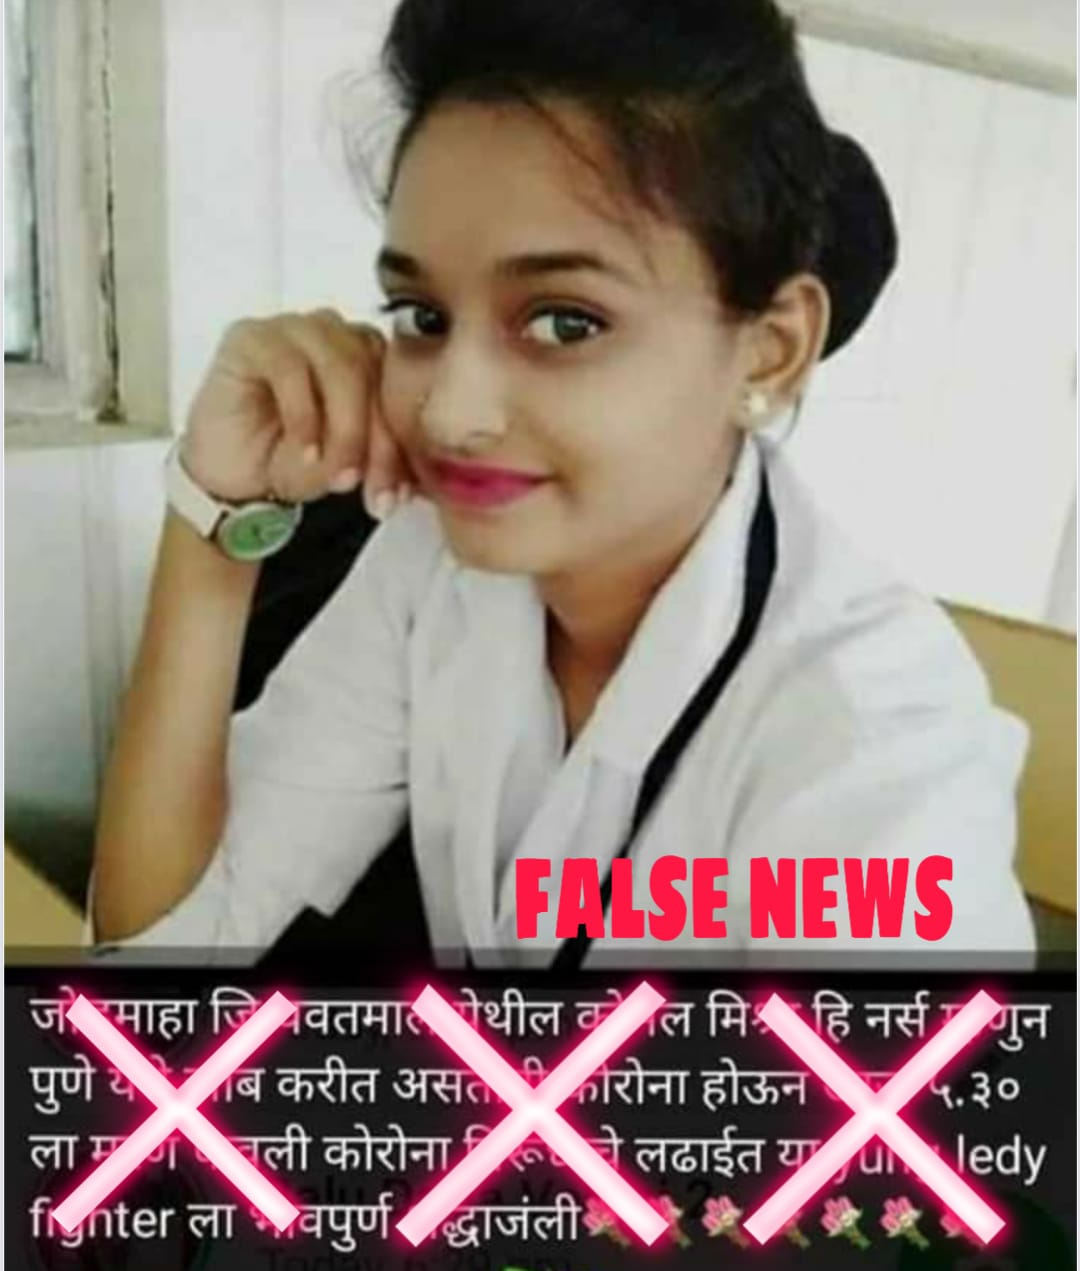 kalpana mishra fake news